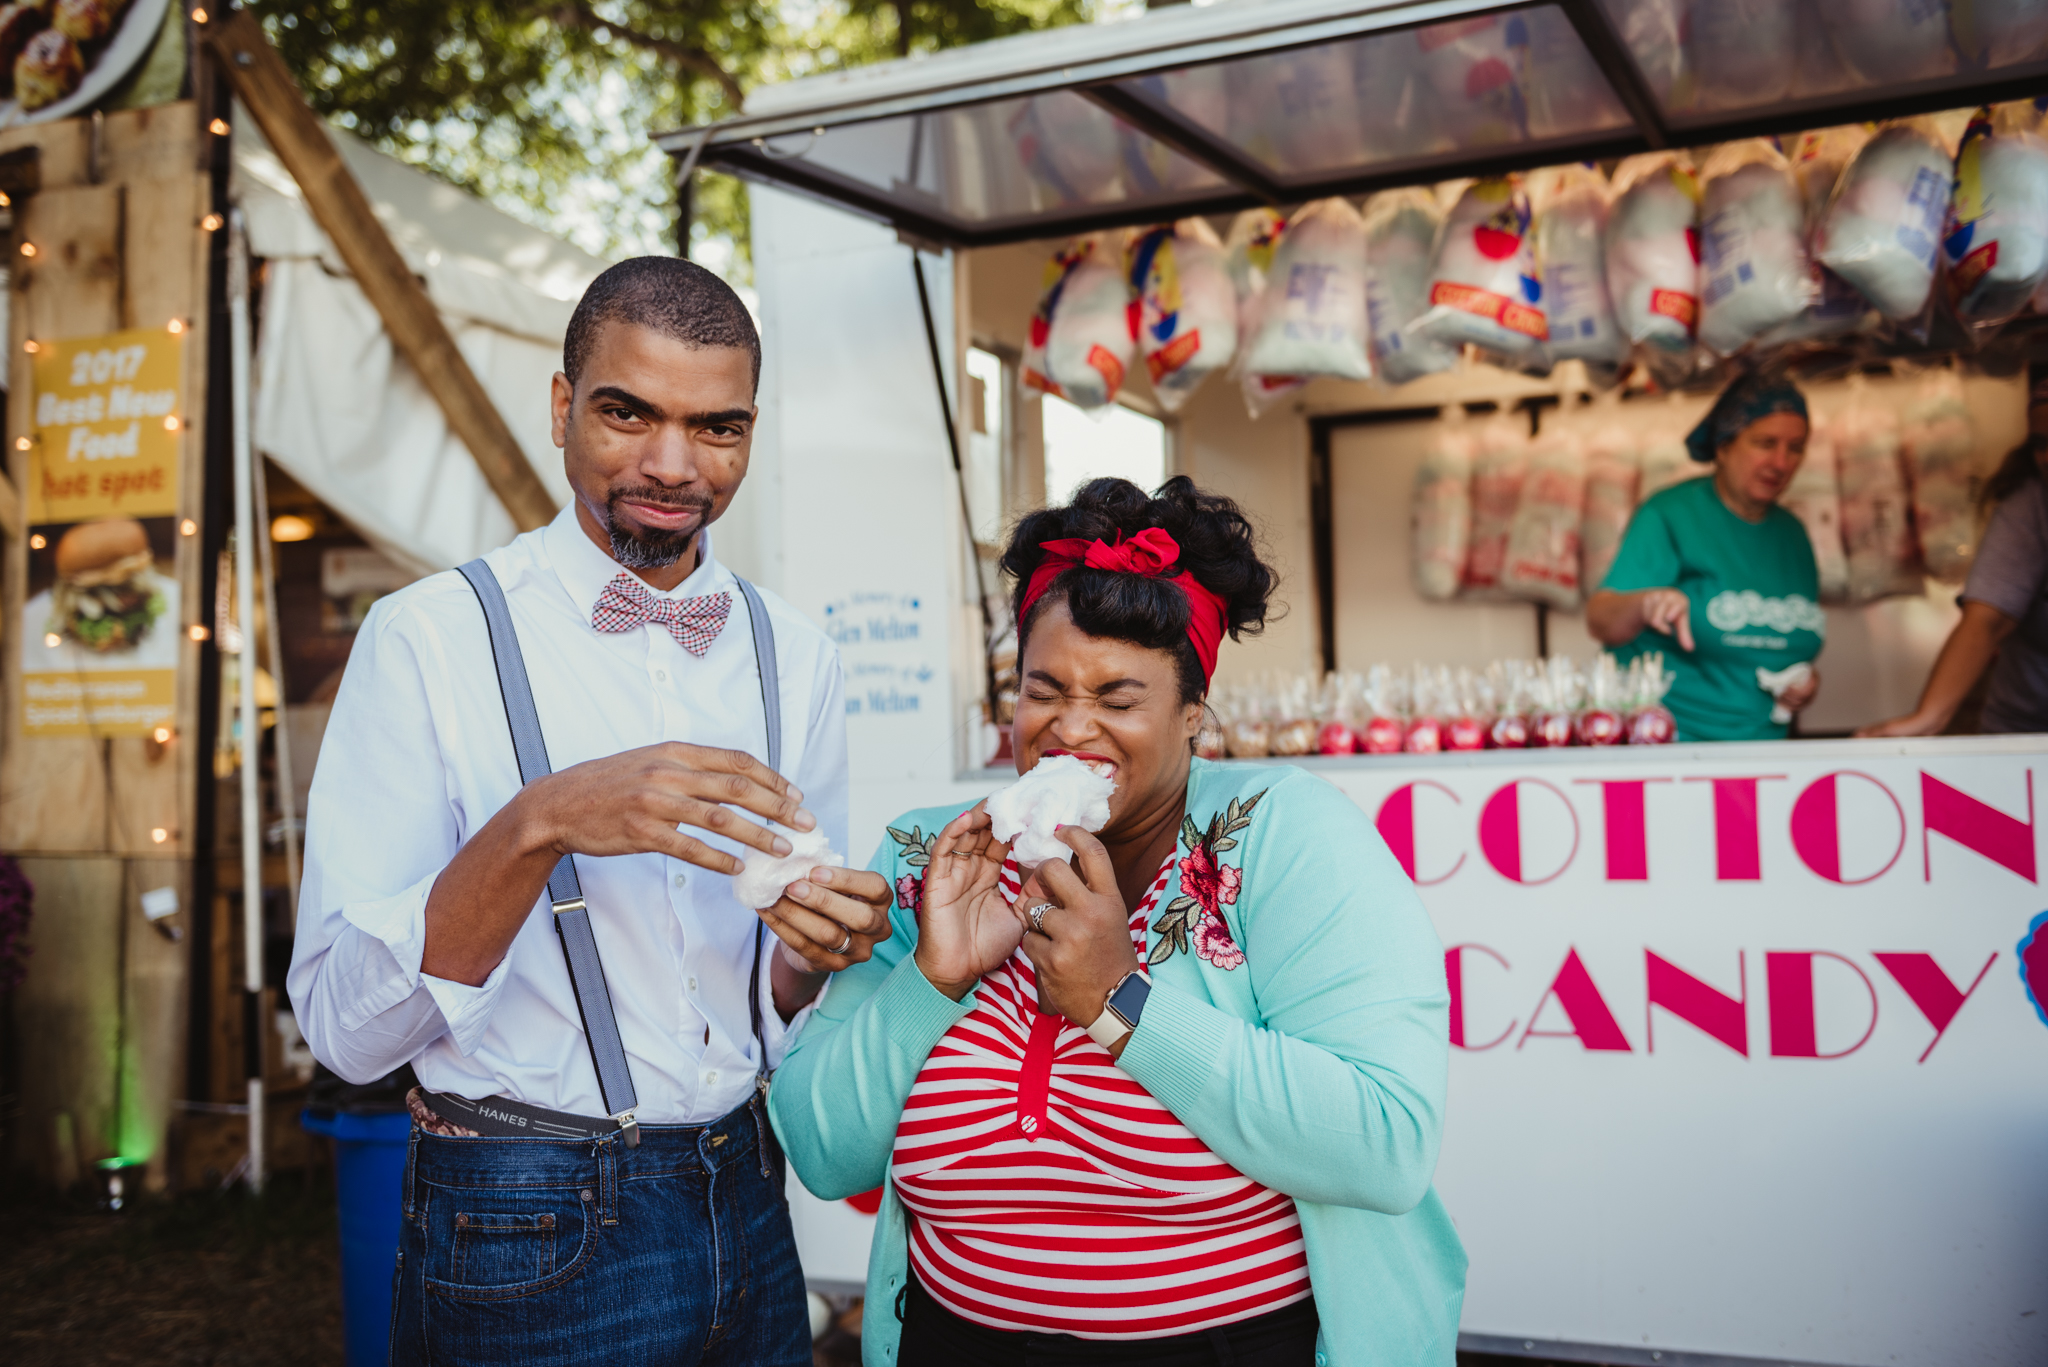 loving-the-cotton-candy-at-the-NC-State-fair.jpg